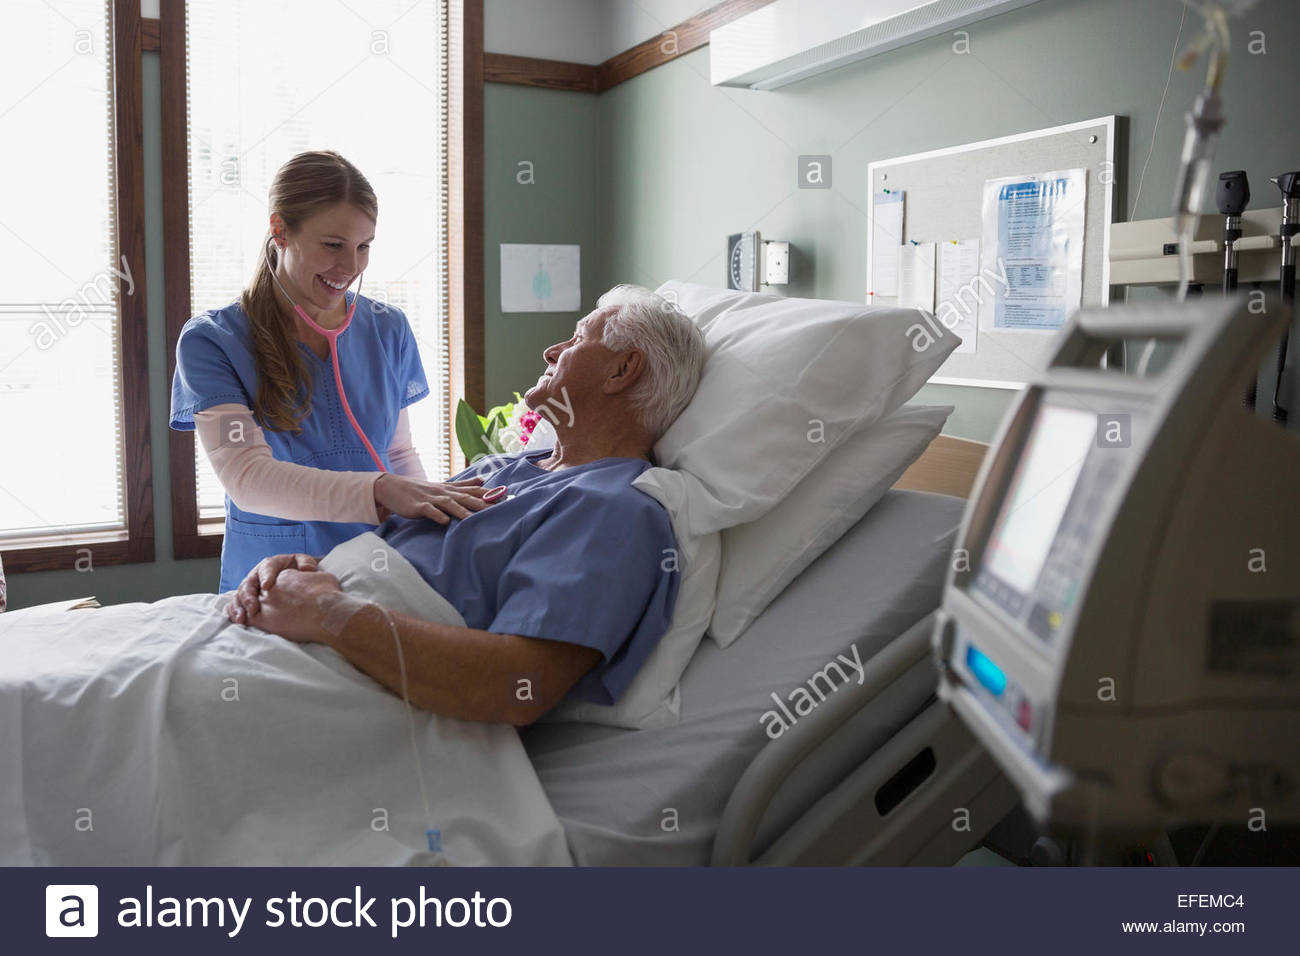 Nurse using stethoscope on patient in hospital room - Stock Image